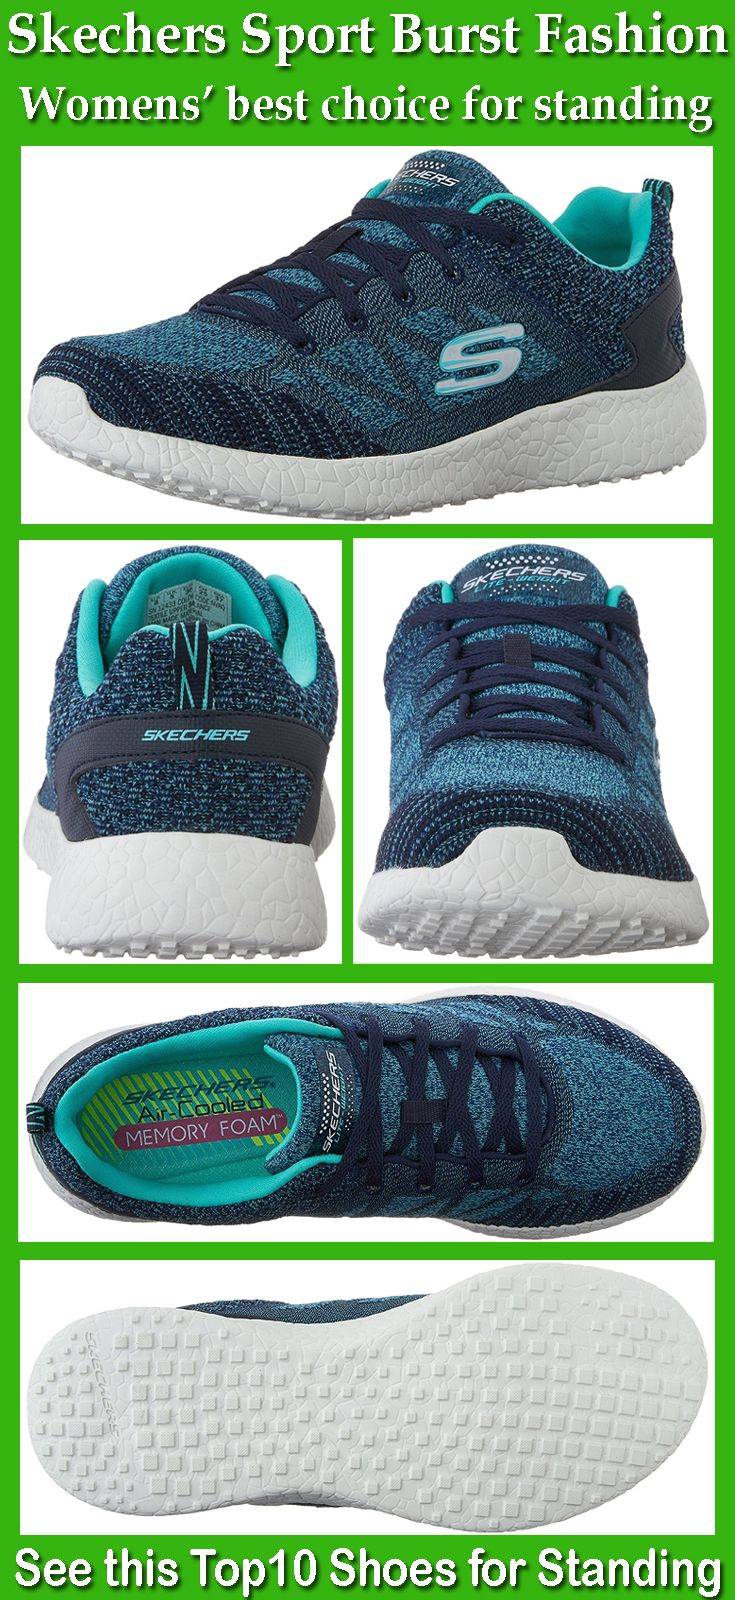 Skechers air cooled memory foam sneaker is lightweight and